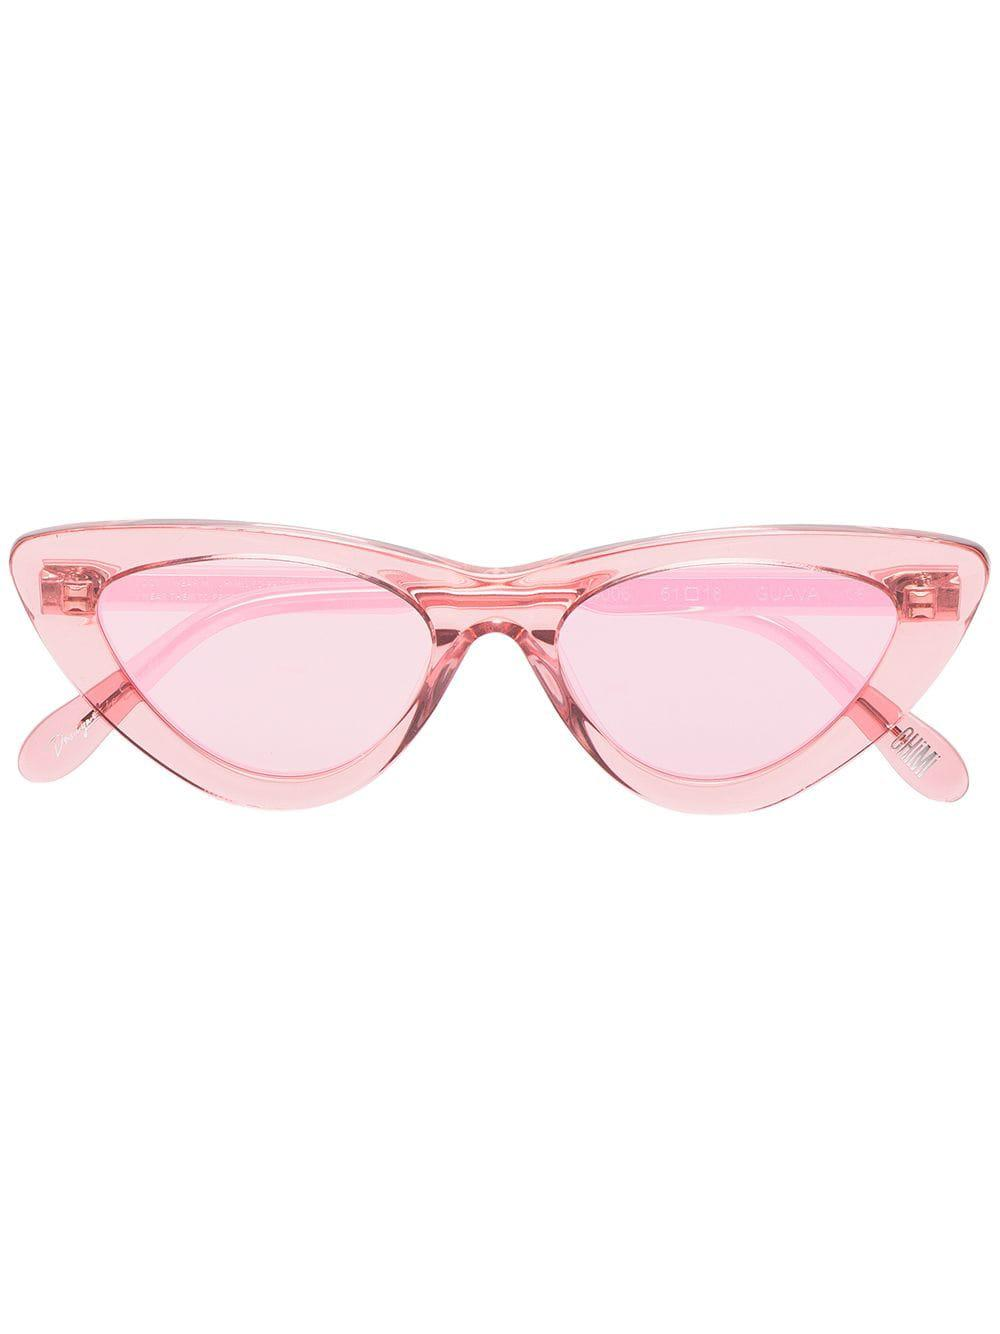 2a8bea7b19 Chimi Pink Guava 006 Cat-eye Sunglasses in Pink - Lyst